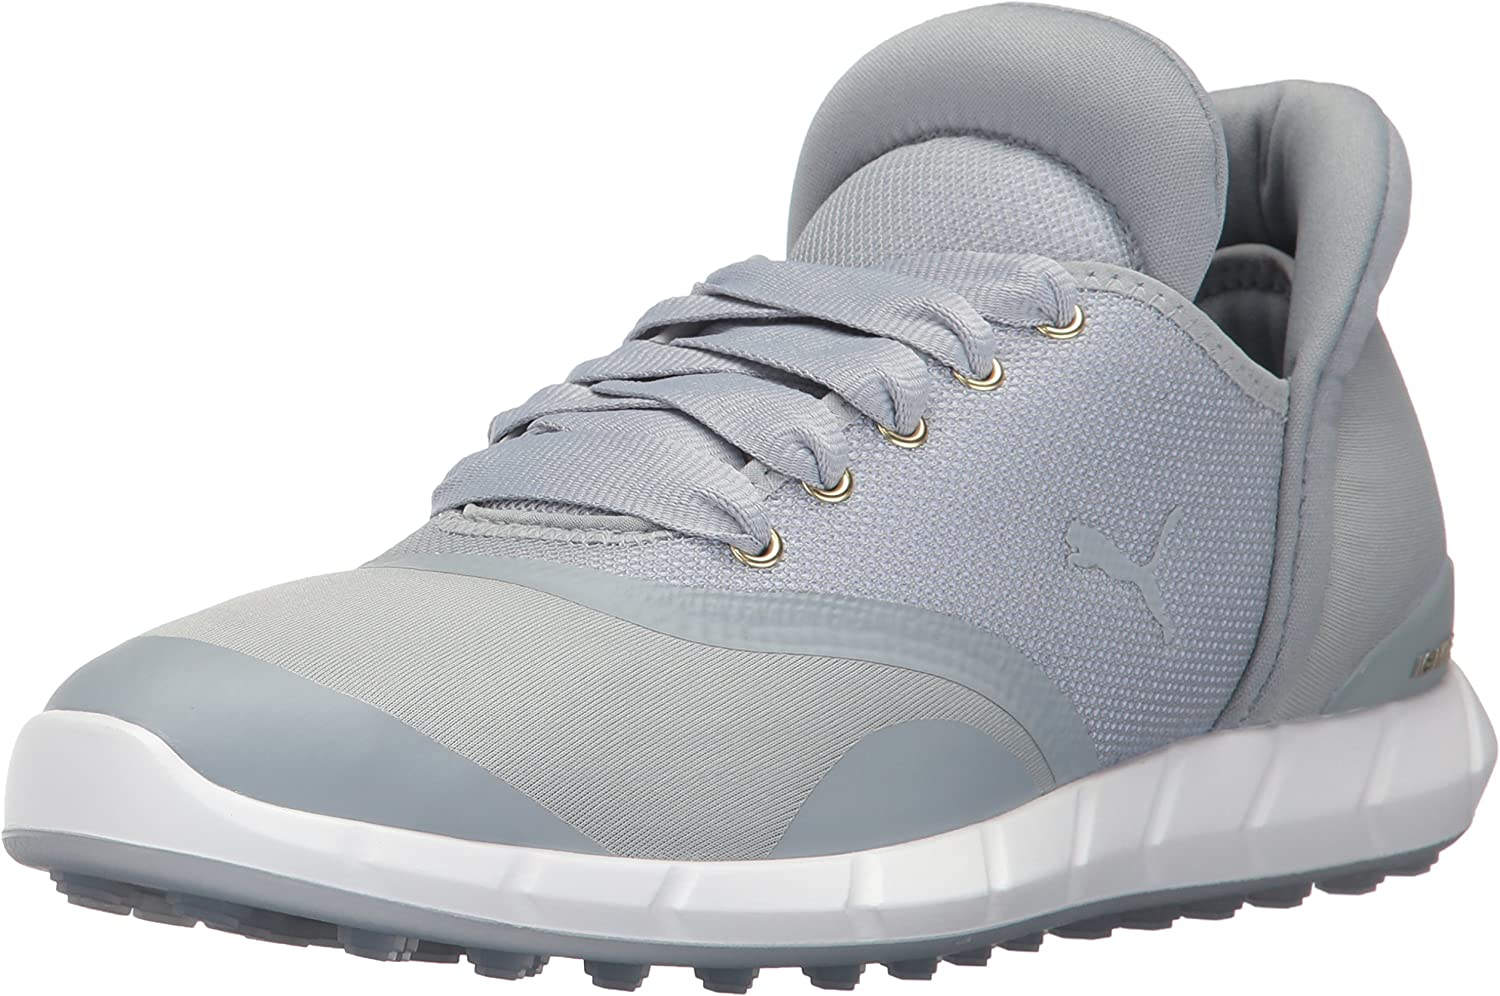 Amazon Com Puma Golf Women S Ignite Statement Golf Shoe Fashion Sneakers